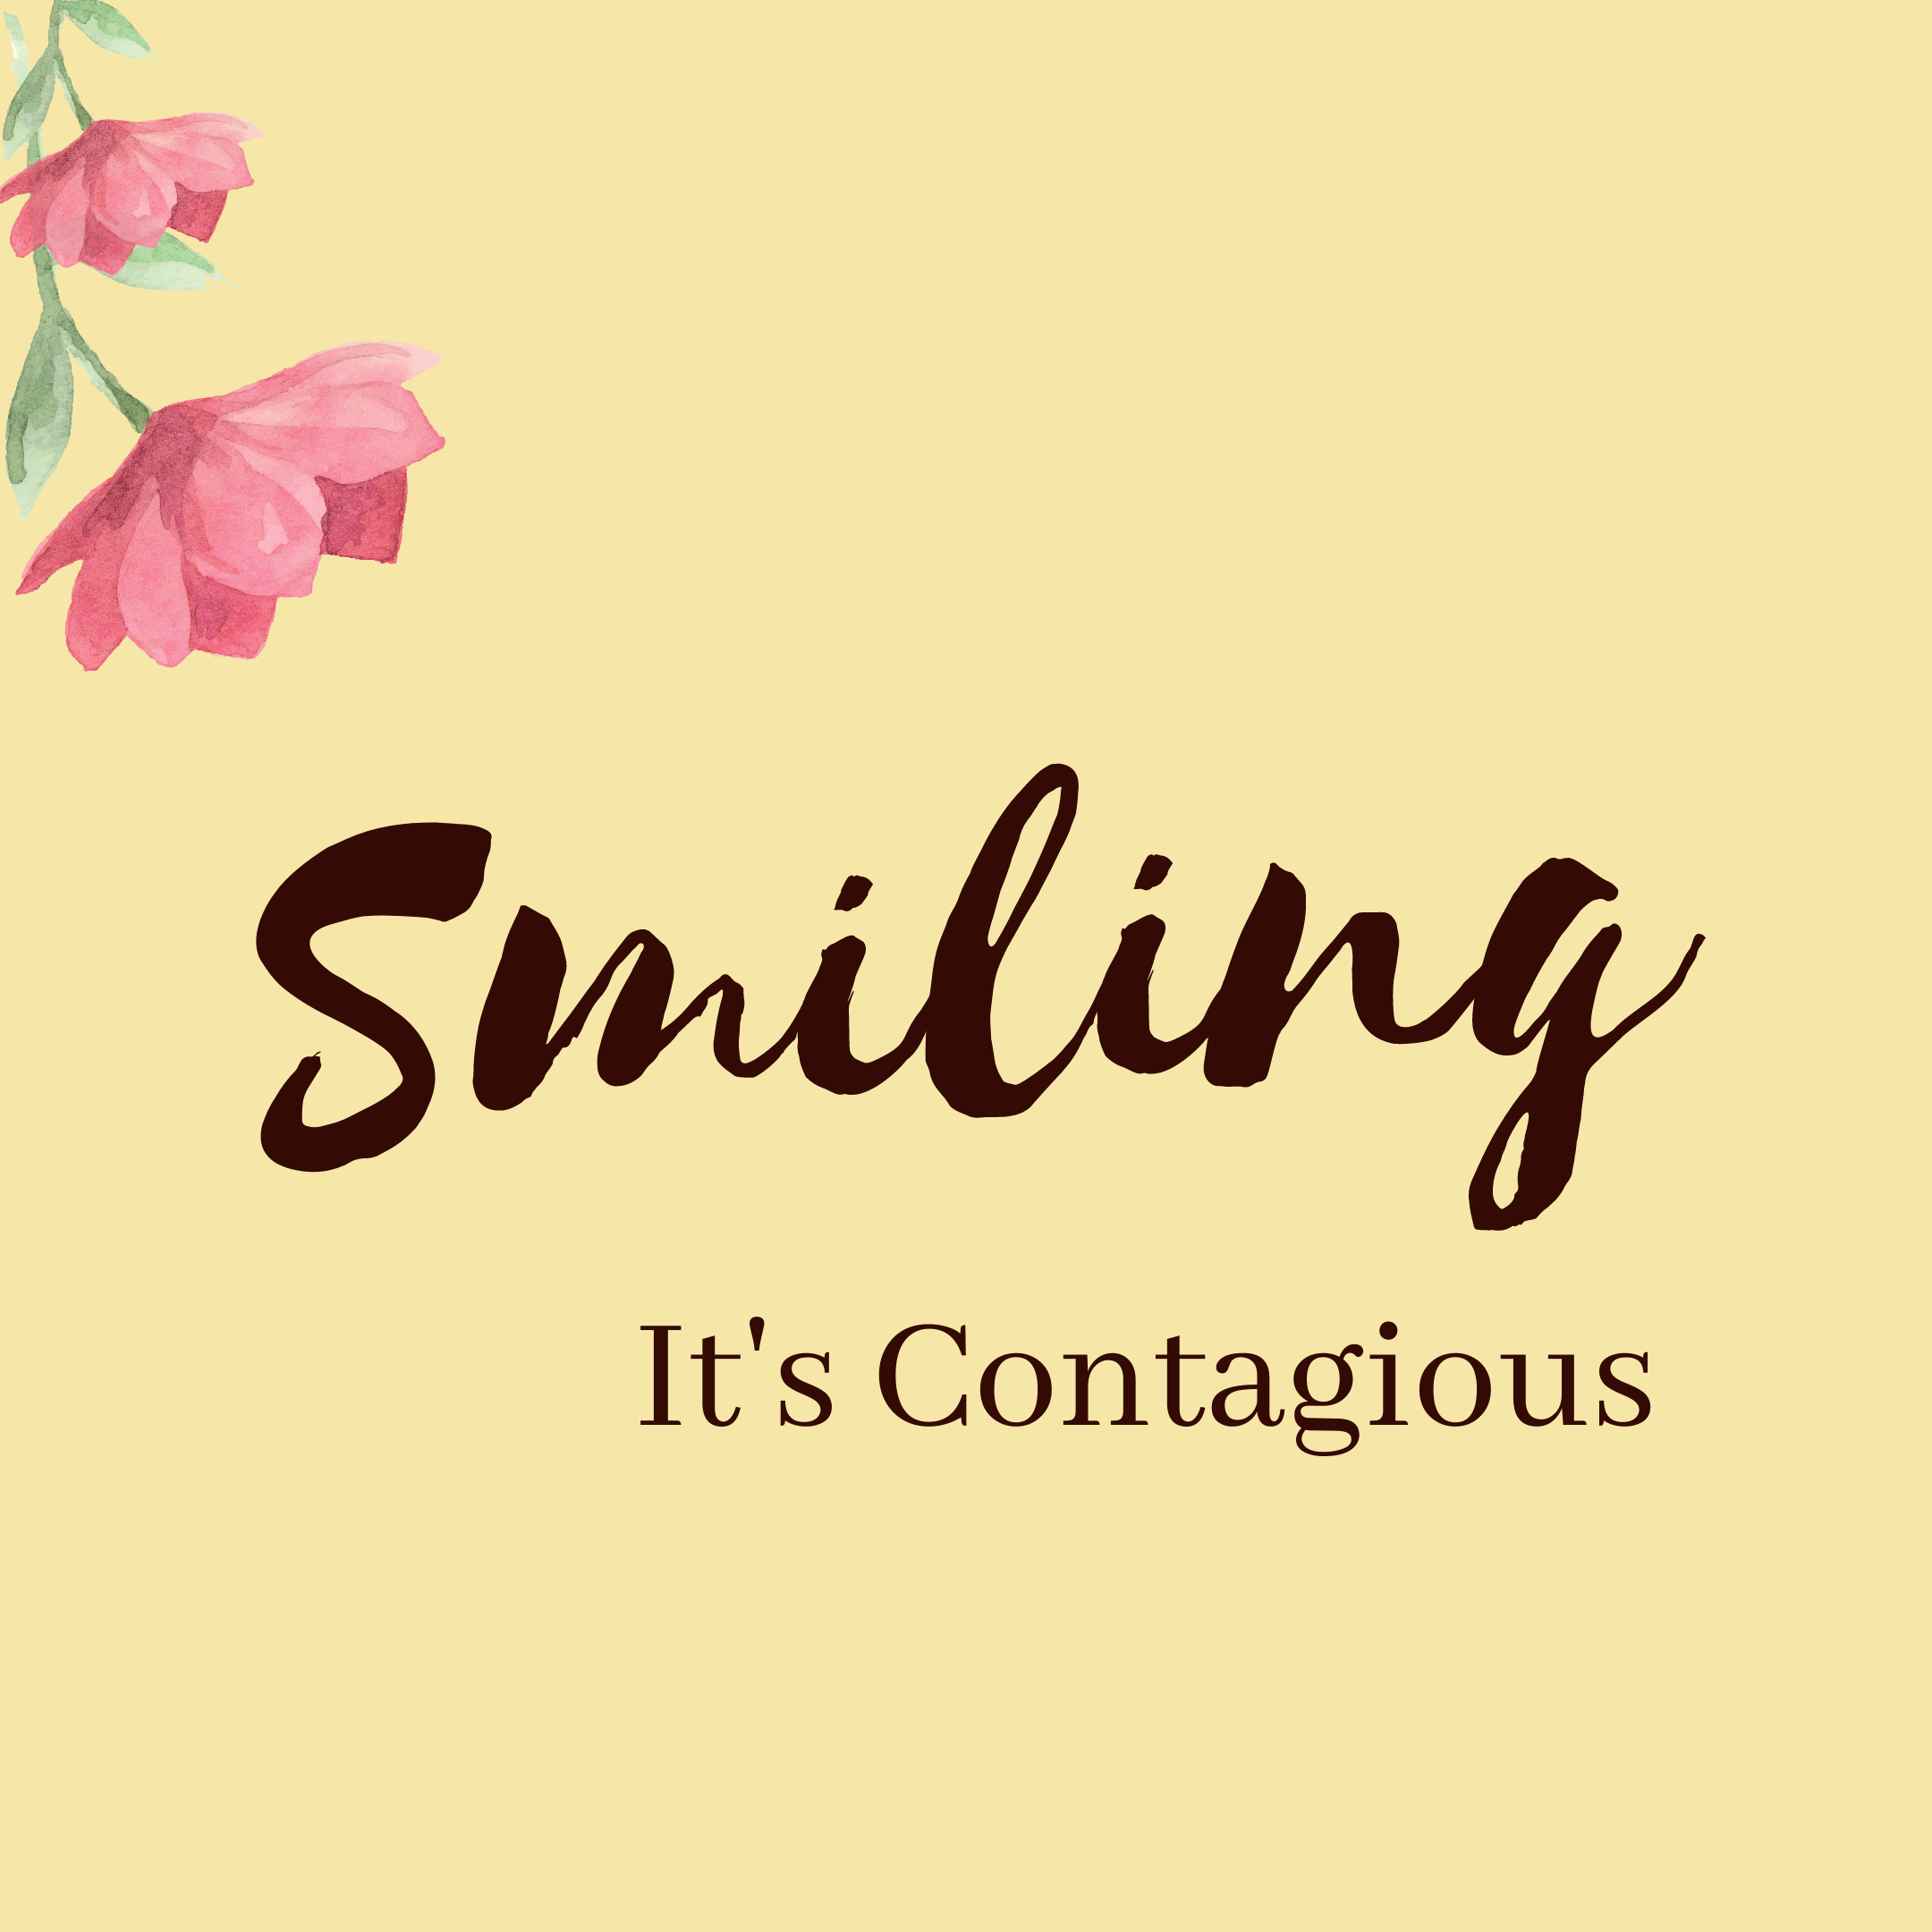 Smiling - It's Contagious Little Organics